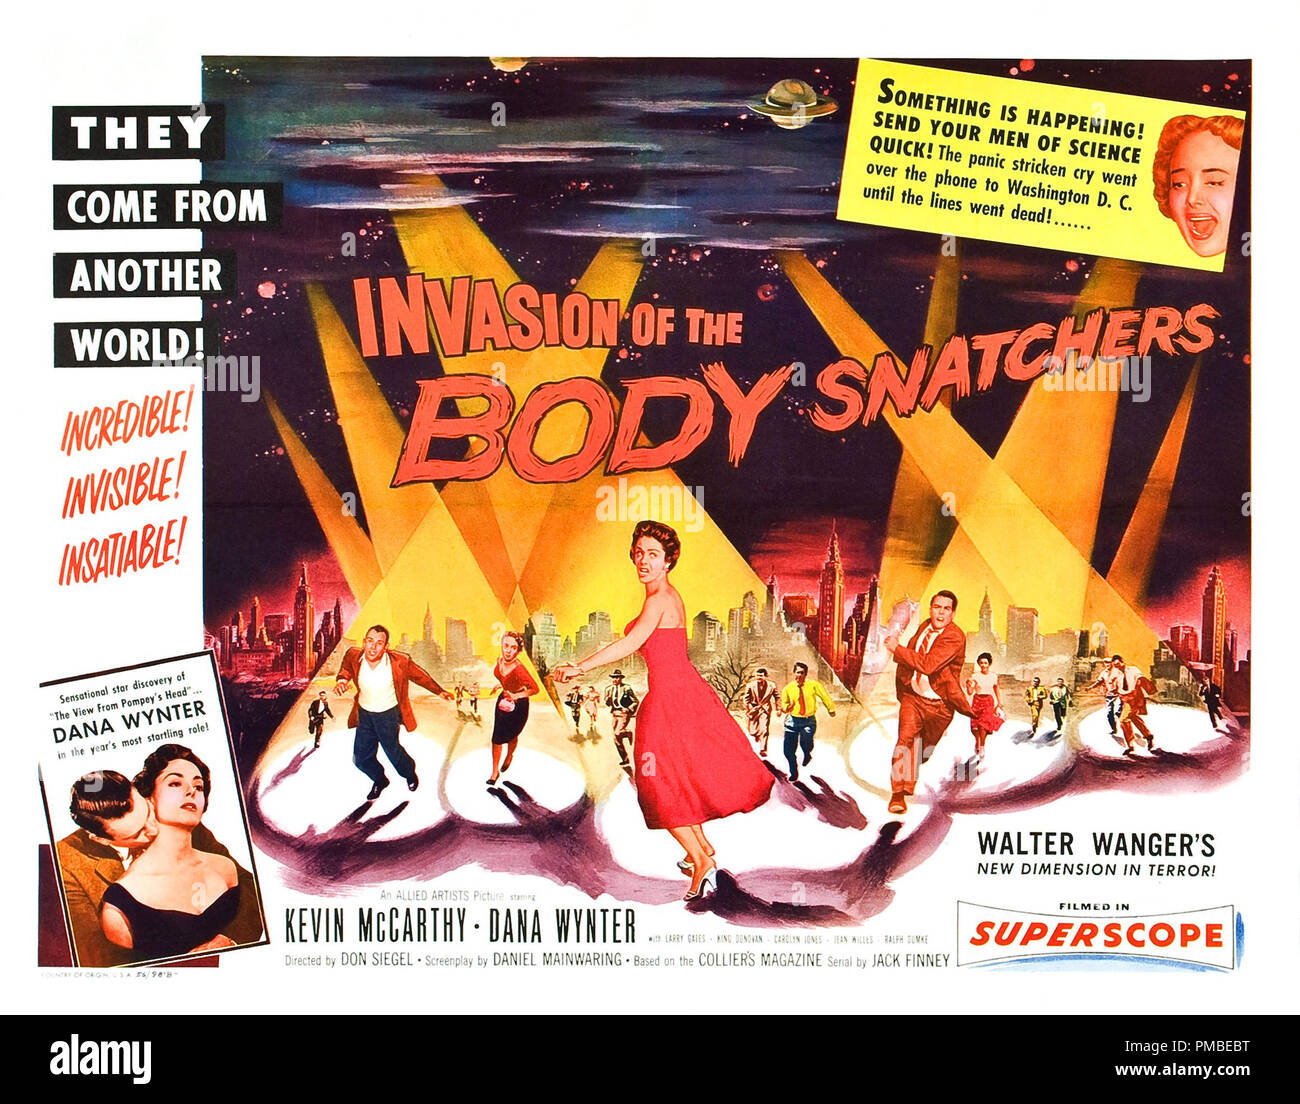 'Invasion of the Body Snatchers', 1956 Allied Artists  Lobby Card File Reference # 33371_612THA - Stock Image